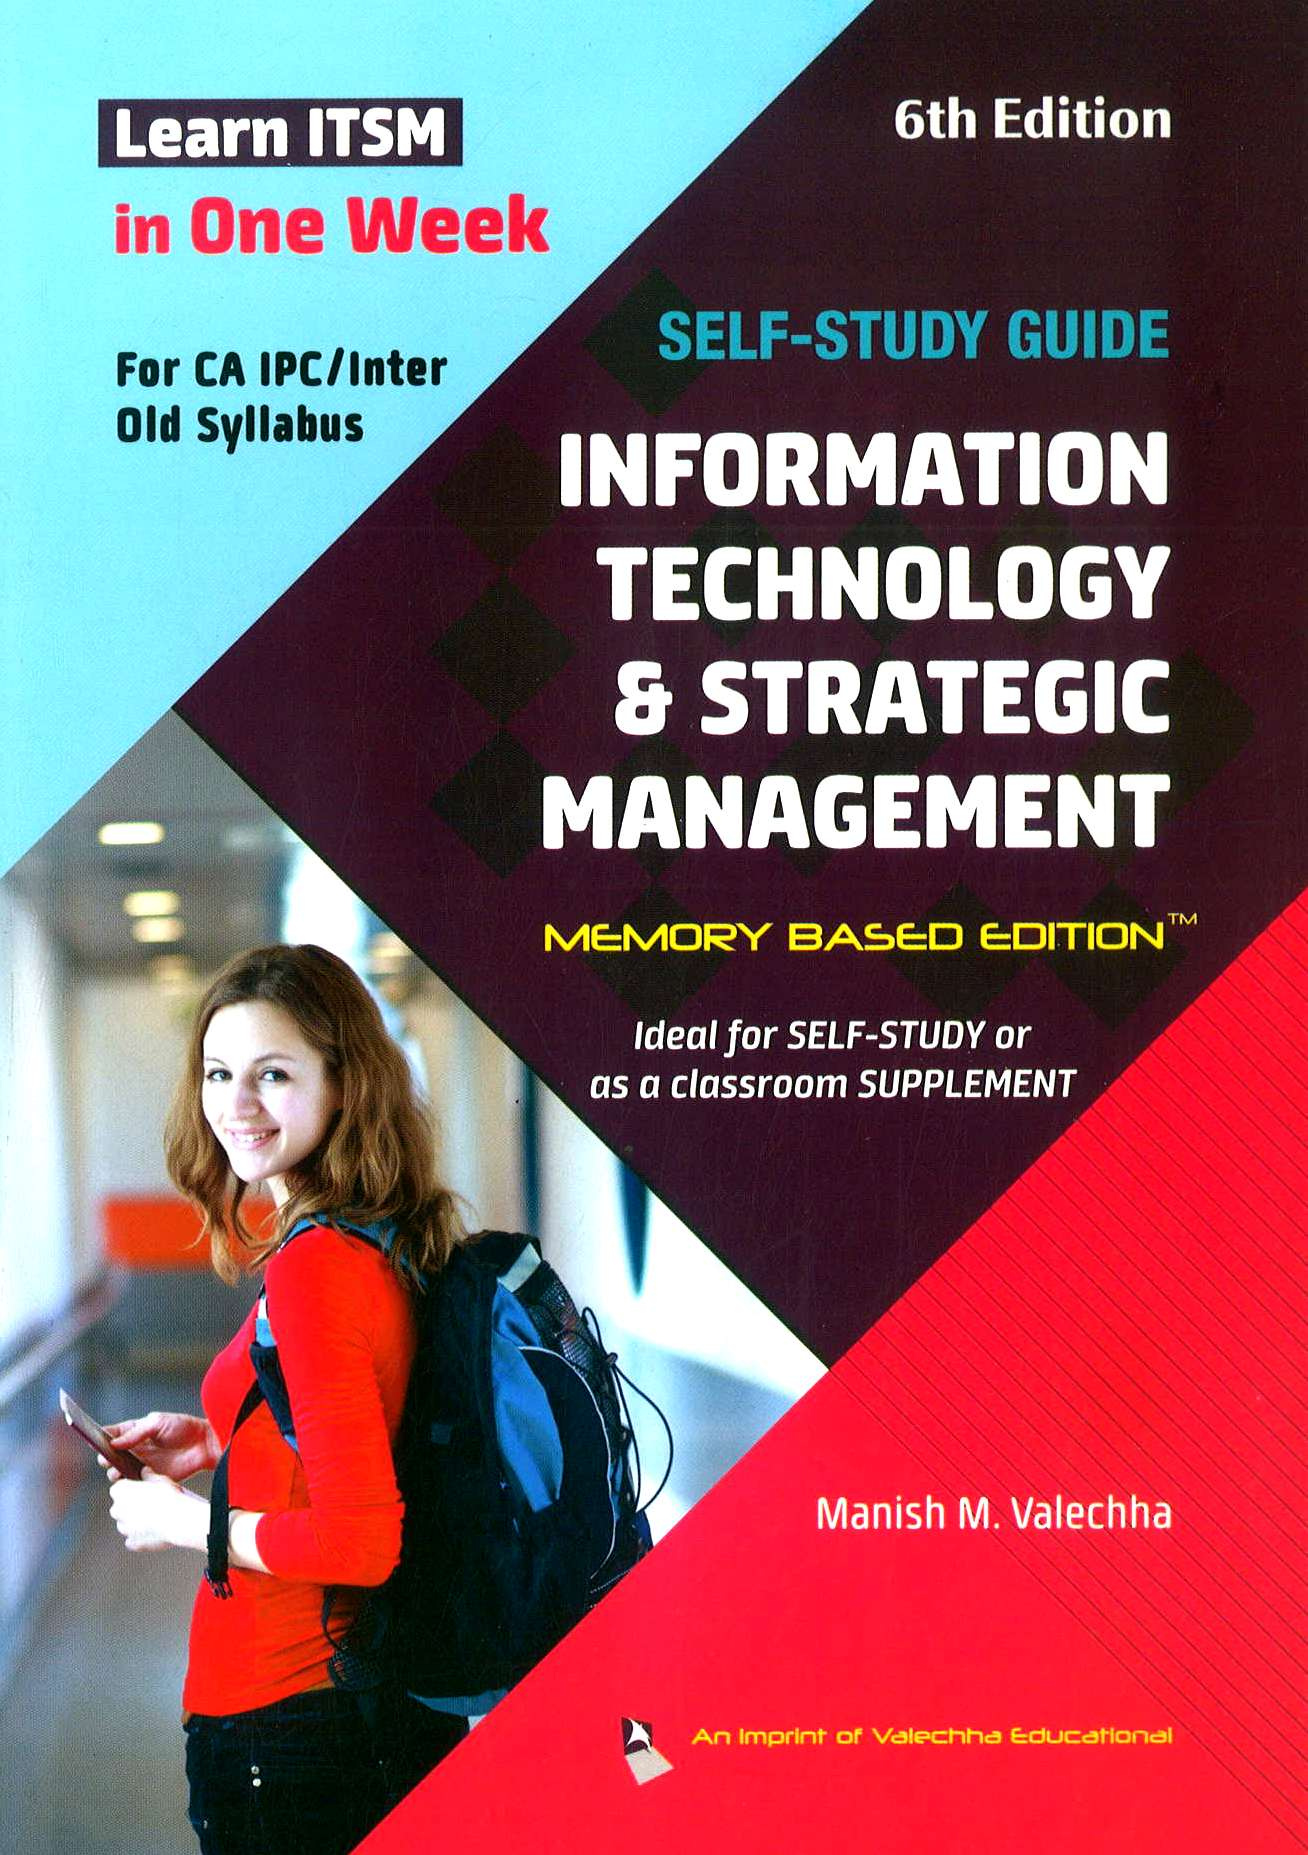 Valechha Educational Self Study Guide on Information Technology and Strategic Management (Memory Based Edition) for CA IPC/Intermediate by Manish M. Valechha (Valechha Educational Publishing) 6th Edition 2018 for Nov 2018 Edition